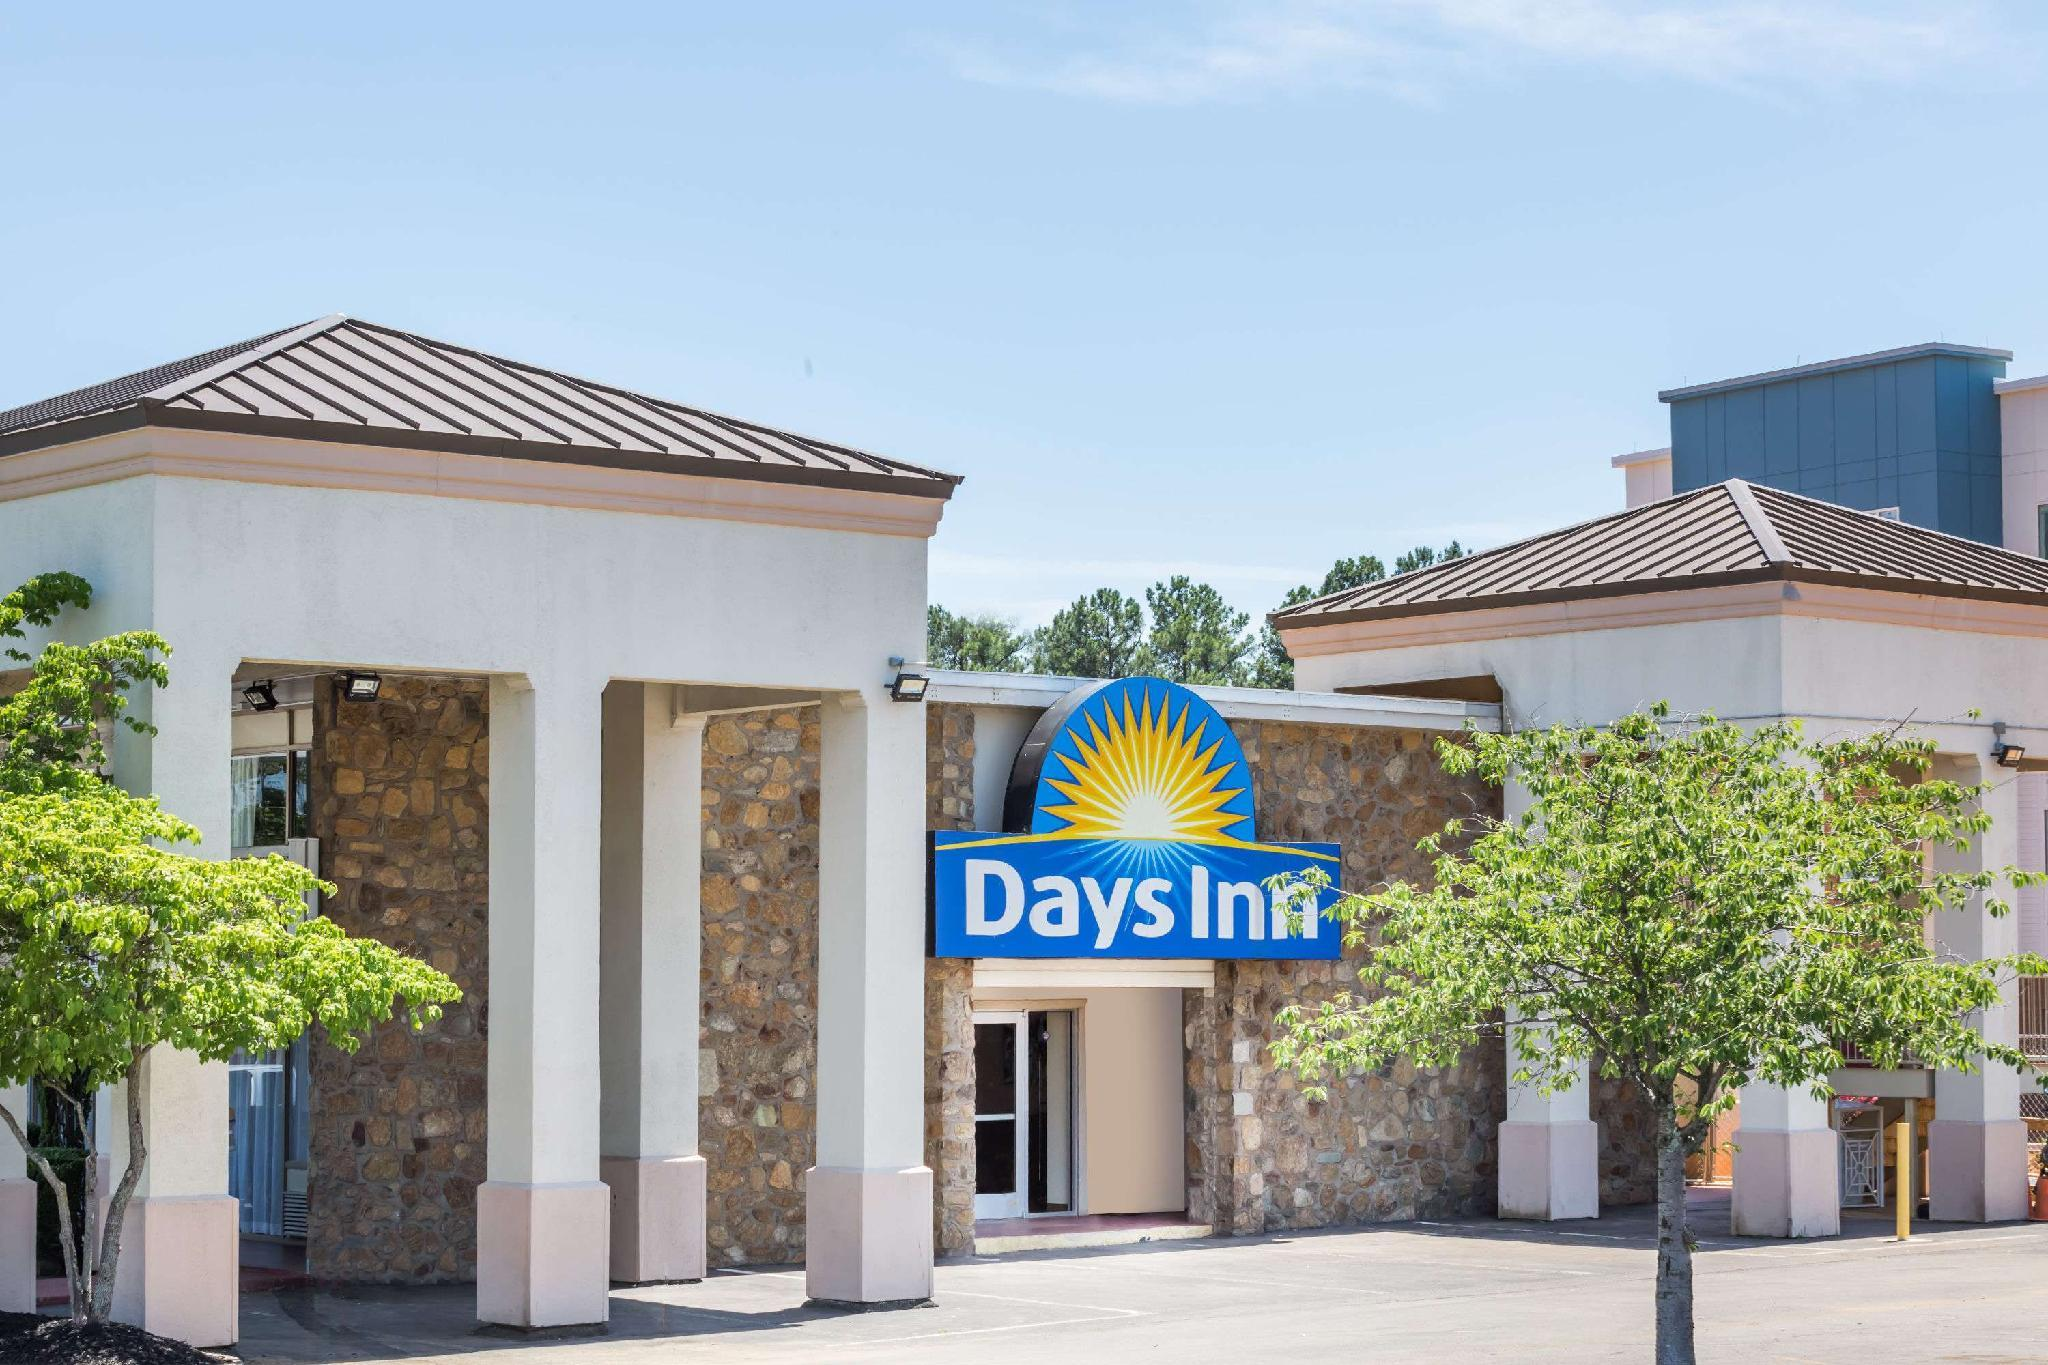 Days Inn by Wyndham Charlottesville/University Area, Charlottesville